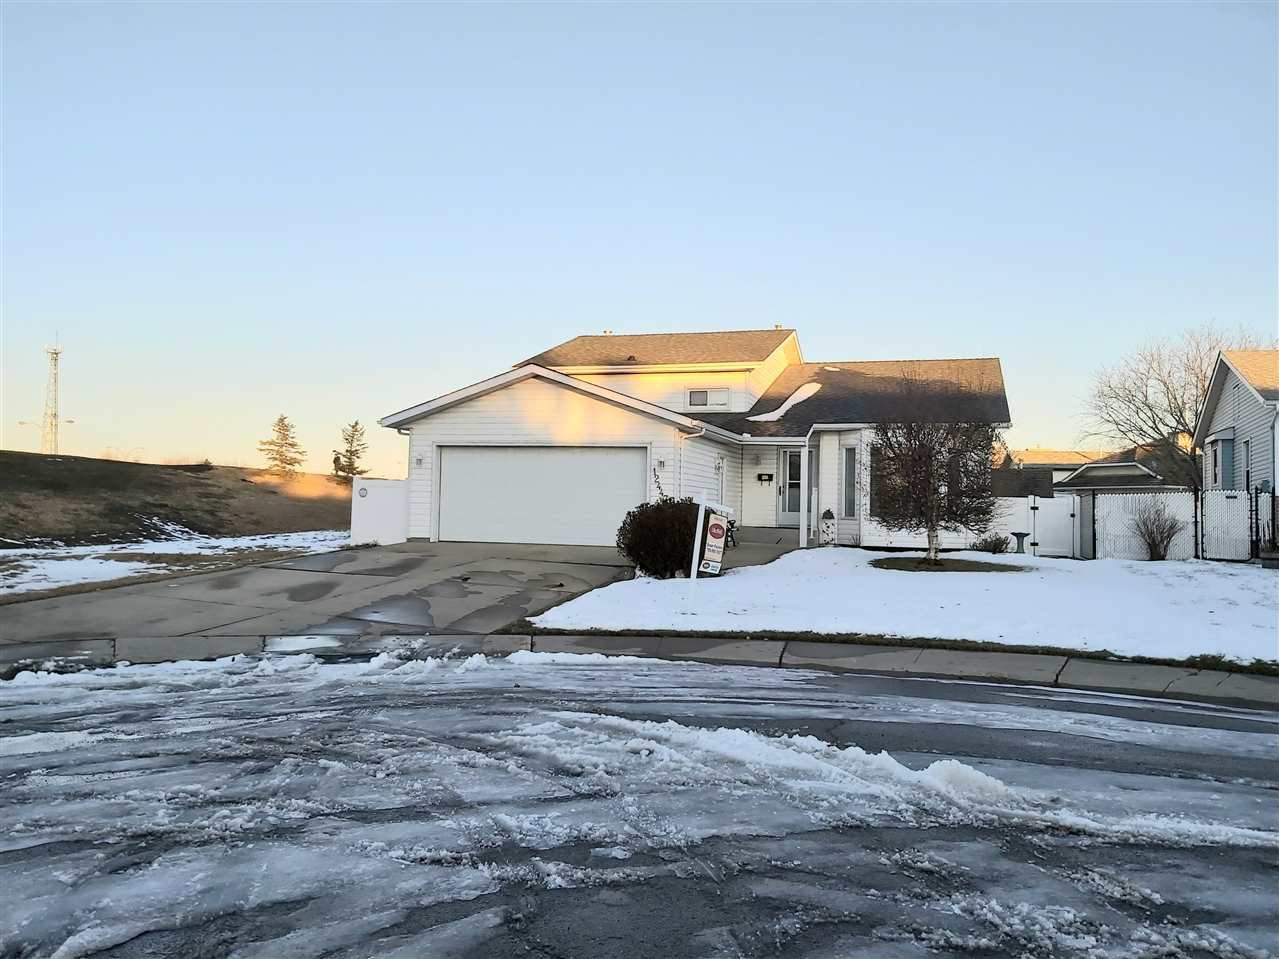 Main Photo: 12447 55 Street NW in Edmonton: Zone 06 House for sale : MLS®# E4160157